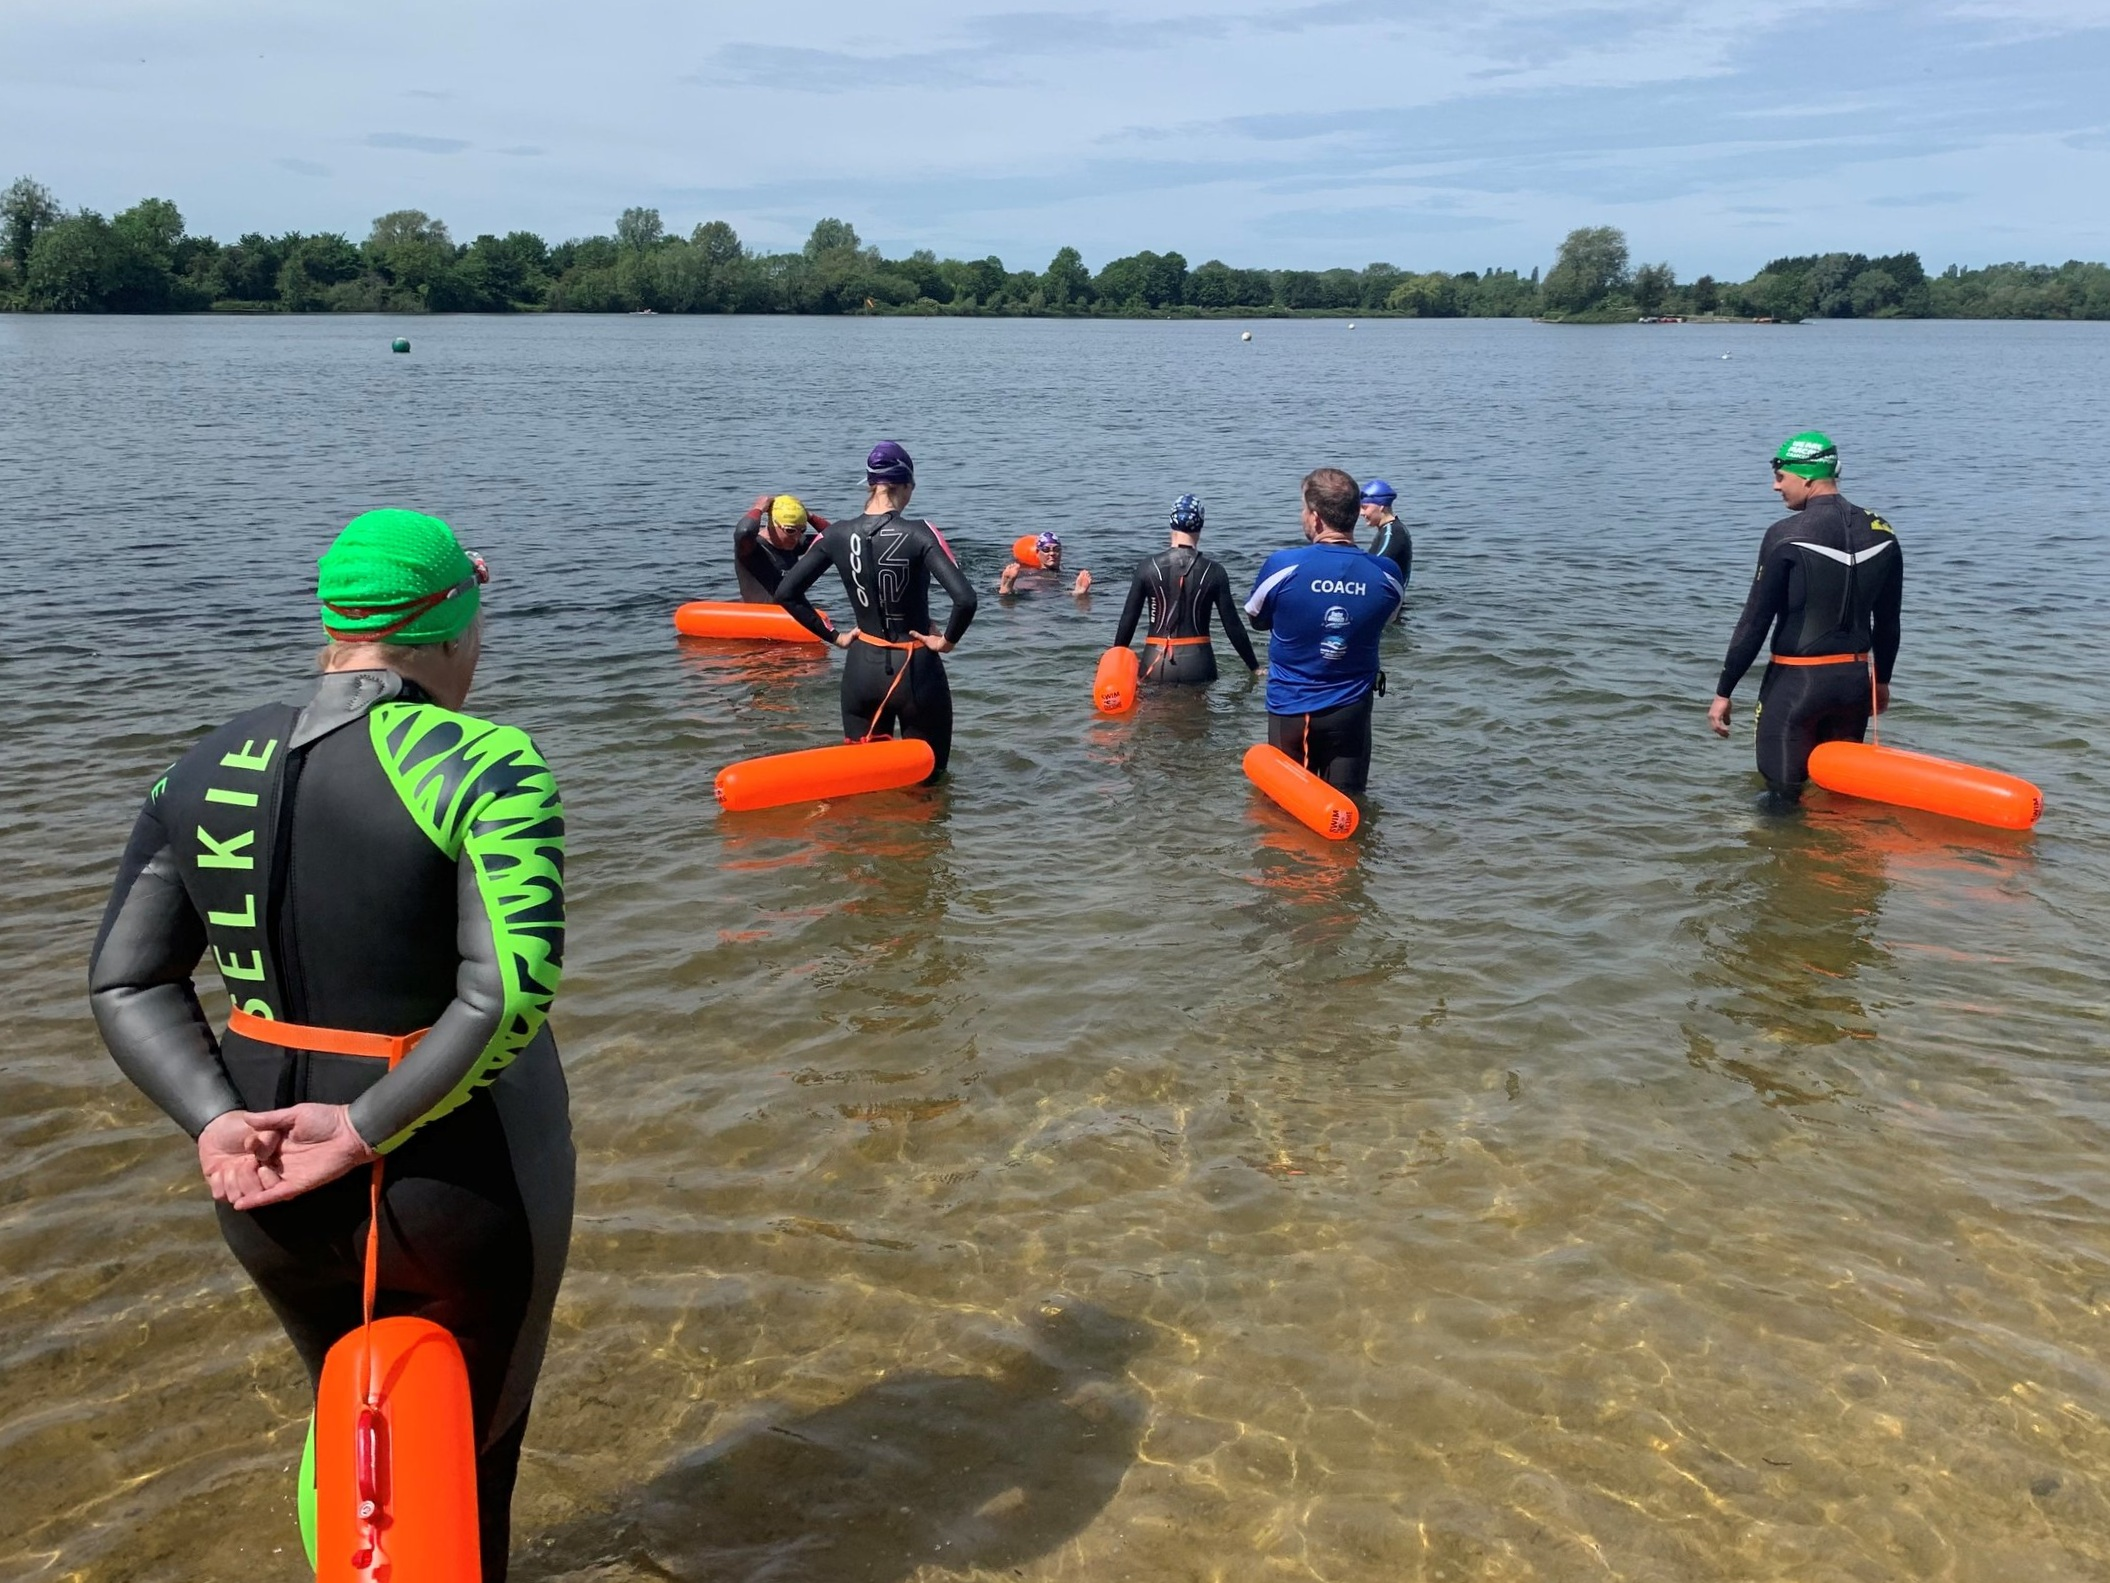 The Tow Woggle in use with  South West Swim  during an Introduction to Open Water Session at the Cotswold Water Park, UK.